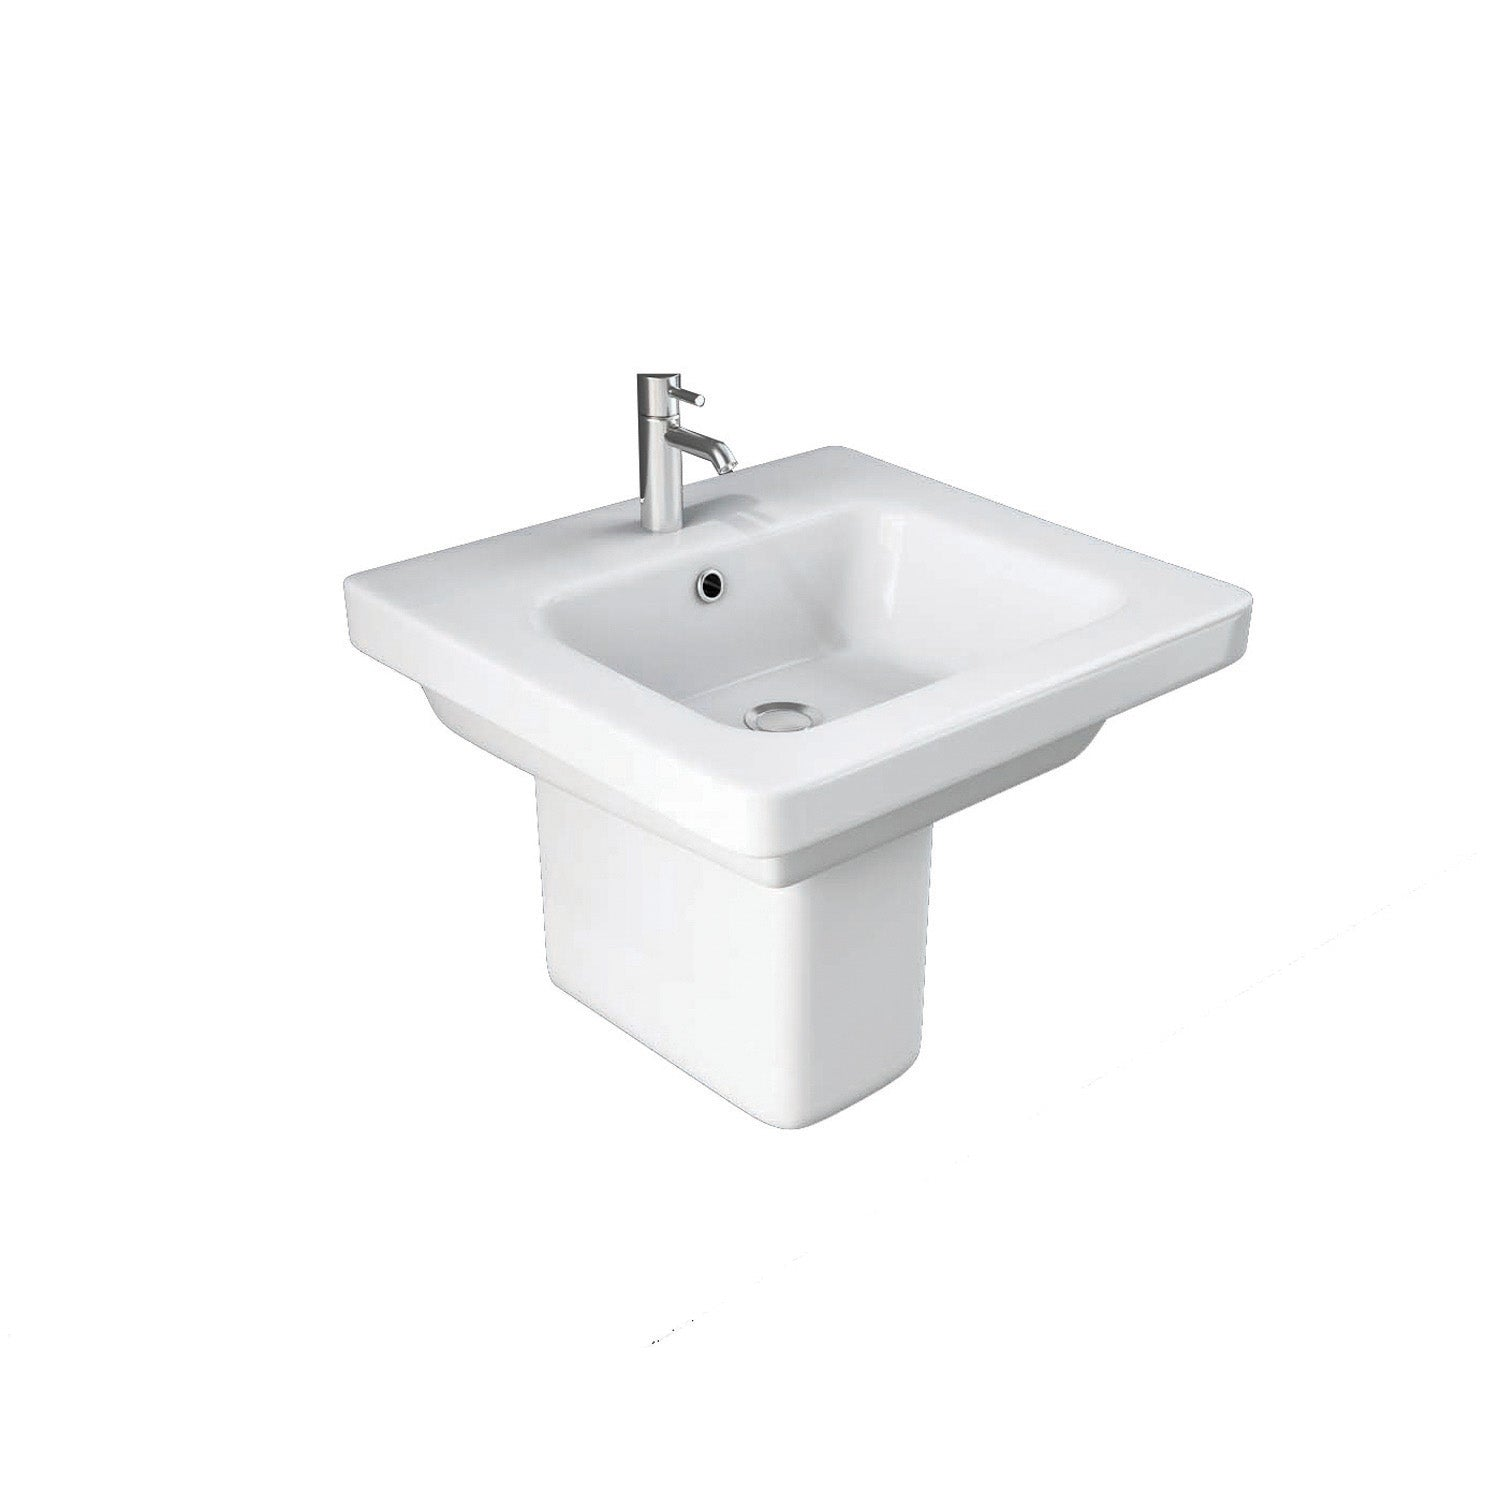 500mm Vesta Wall Hung Basin on a white background